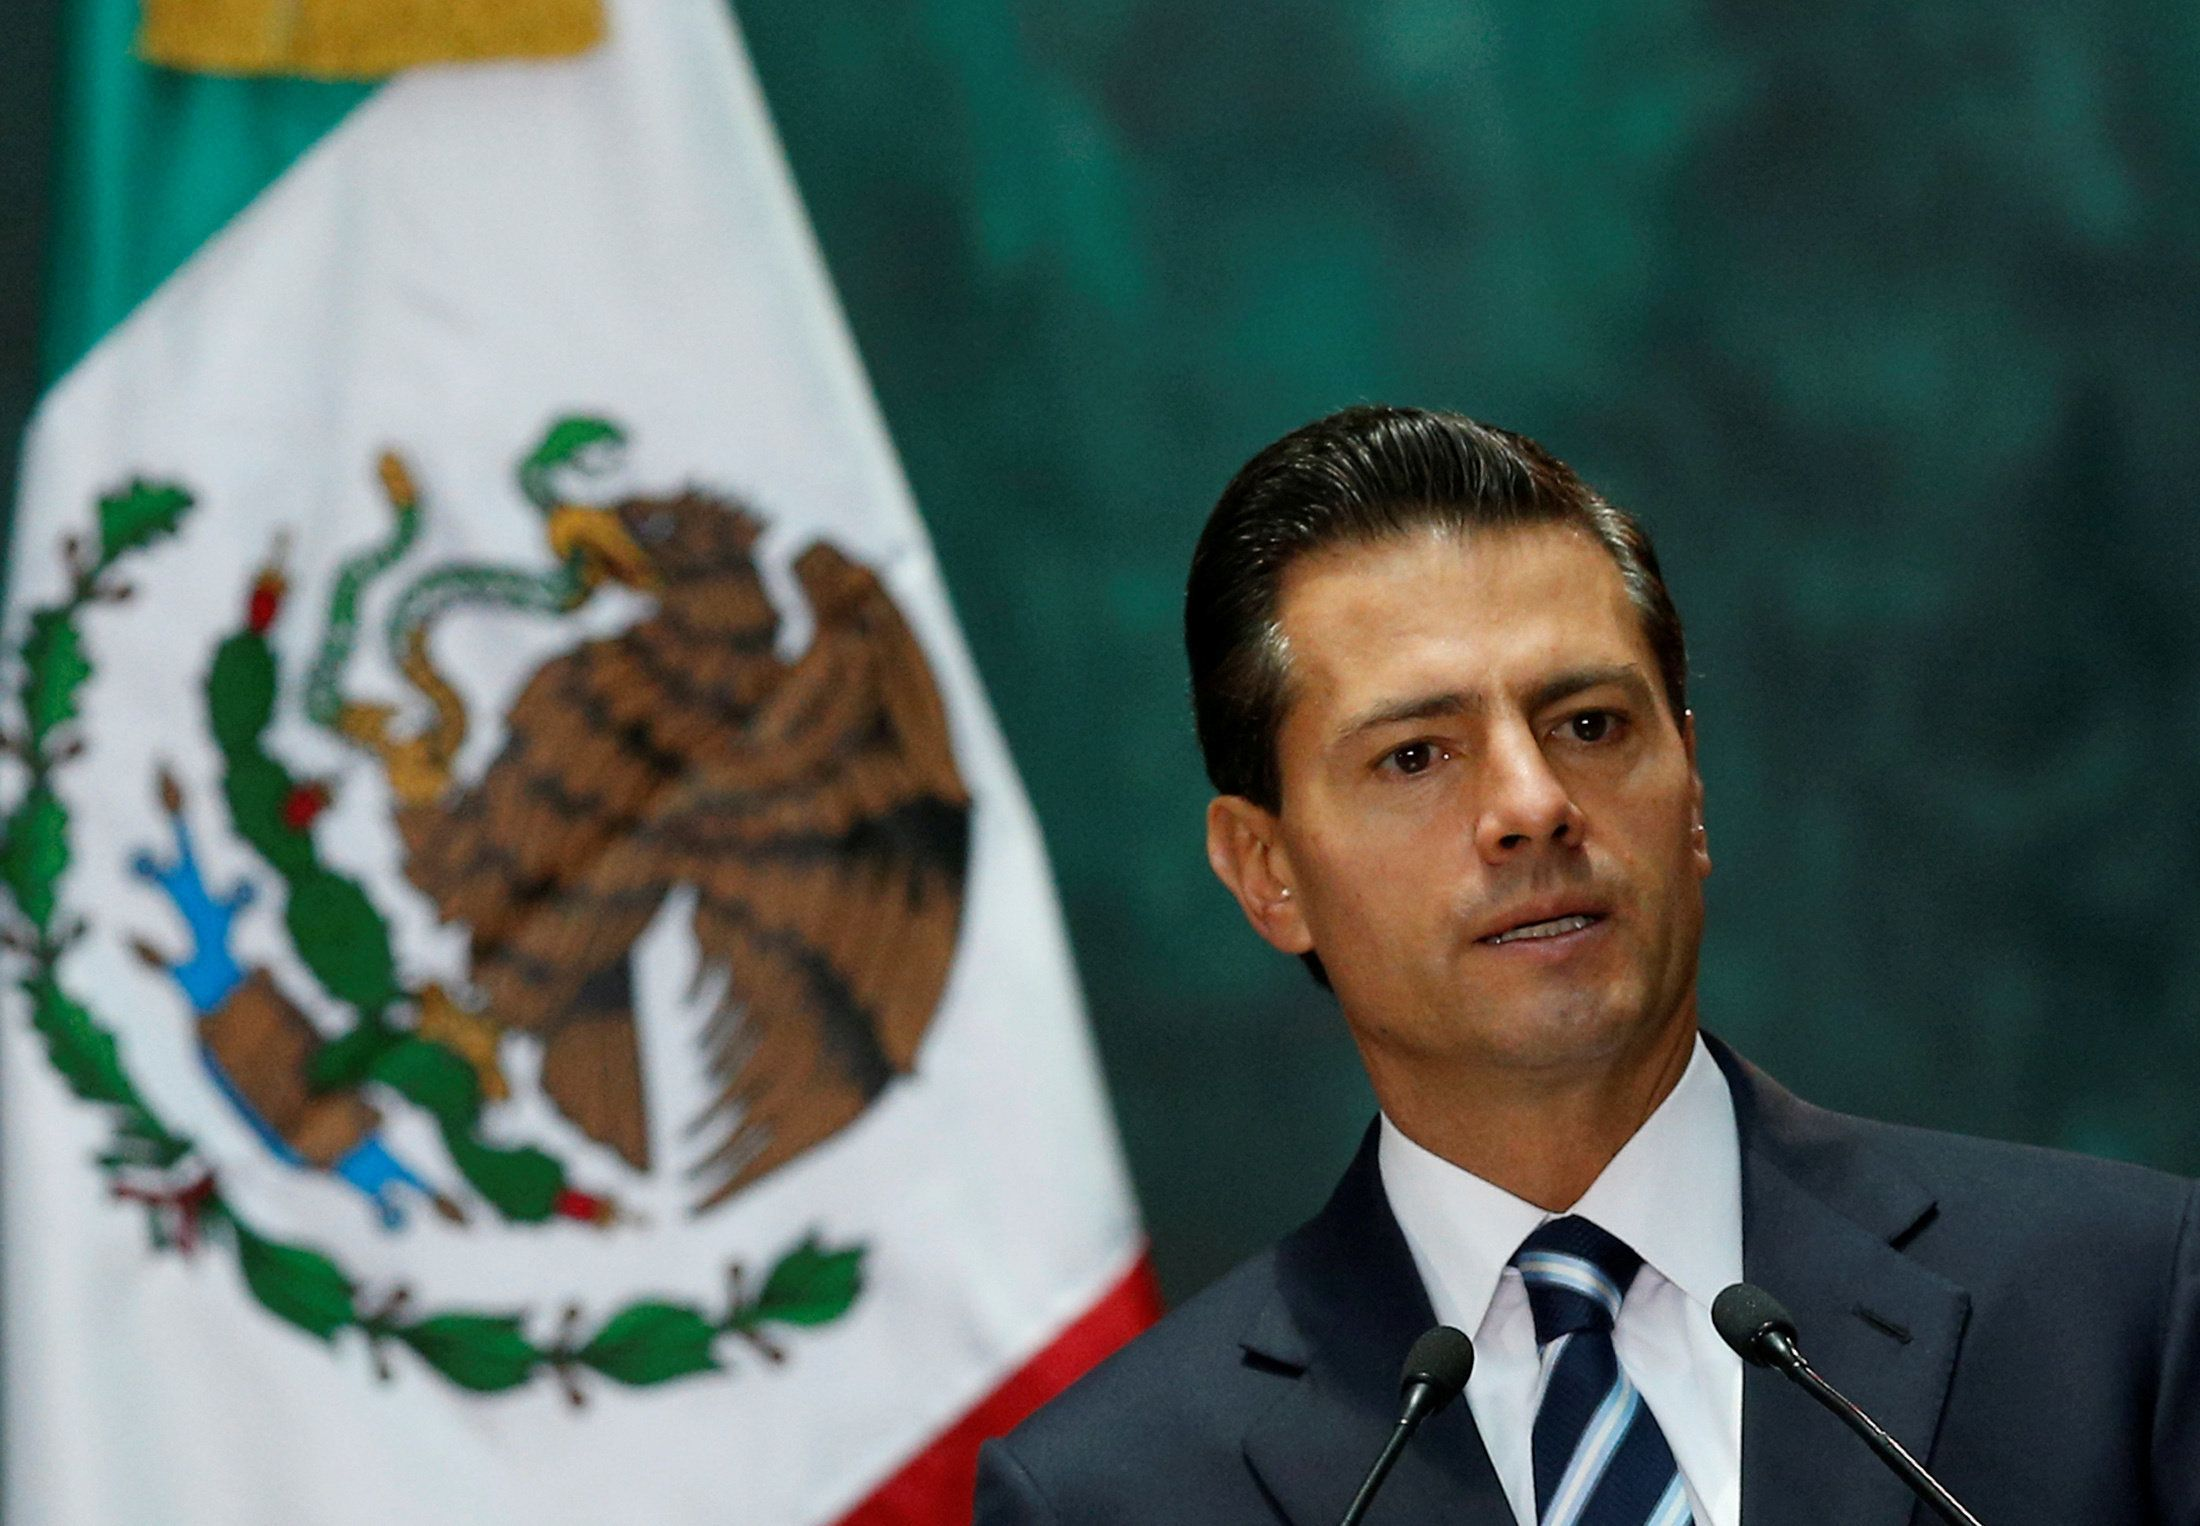 FILE PHOTO: Mexico's President Enrique Pena Nieto gives a speech next to Australia's Governor-General Peter Cosgrove during an official welcoming ceremony, at the National Palace in Mexico City, Mexico August 1, 2016. REUTERS/Henry Romero/File photo